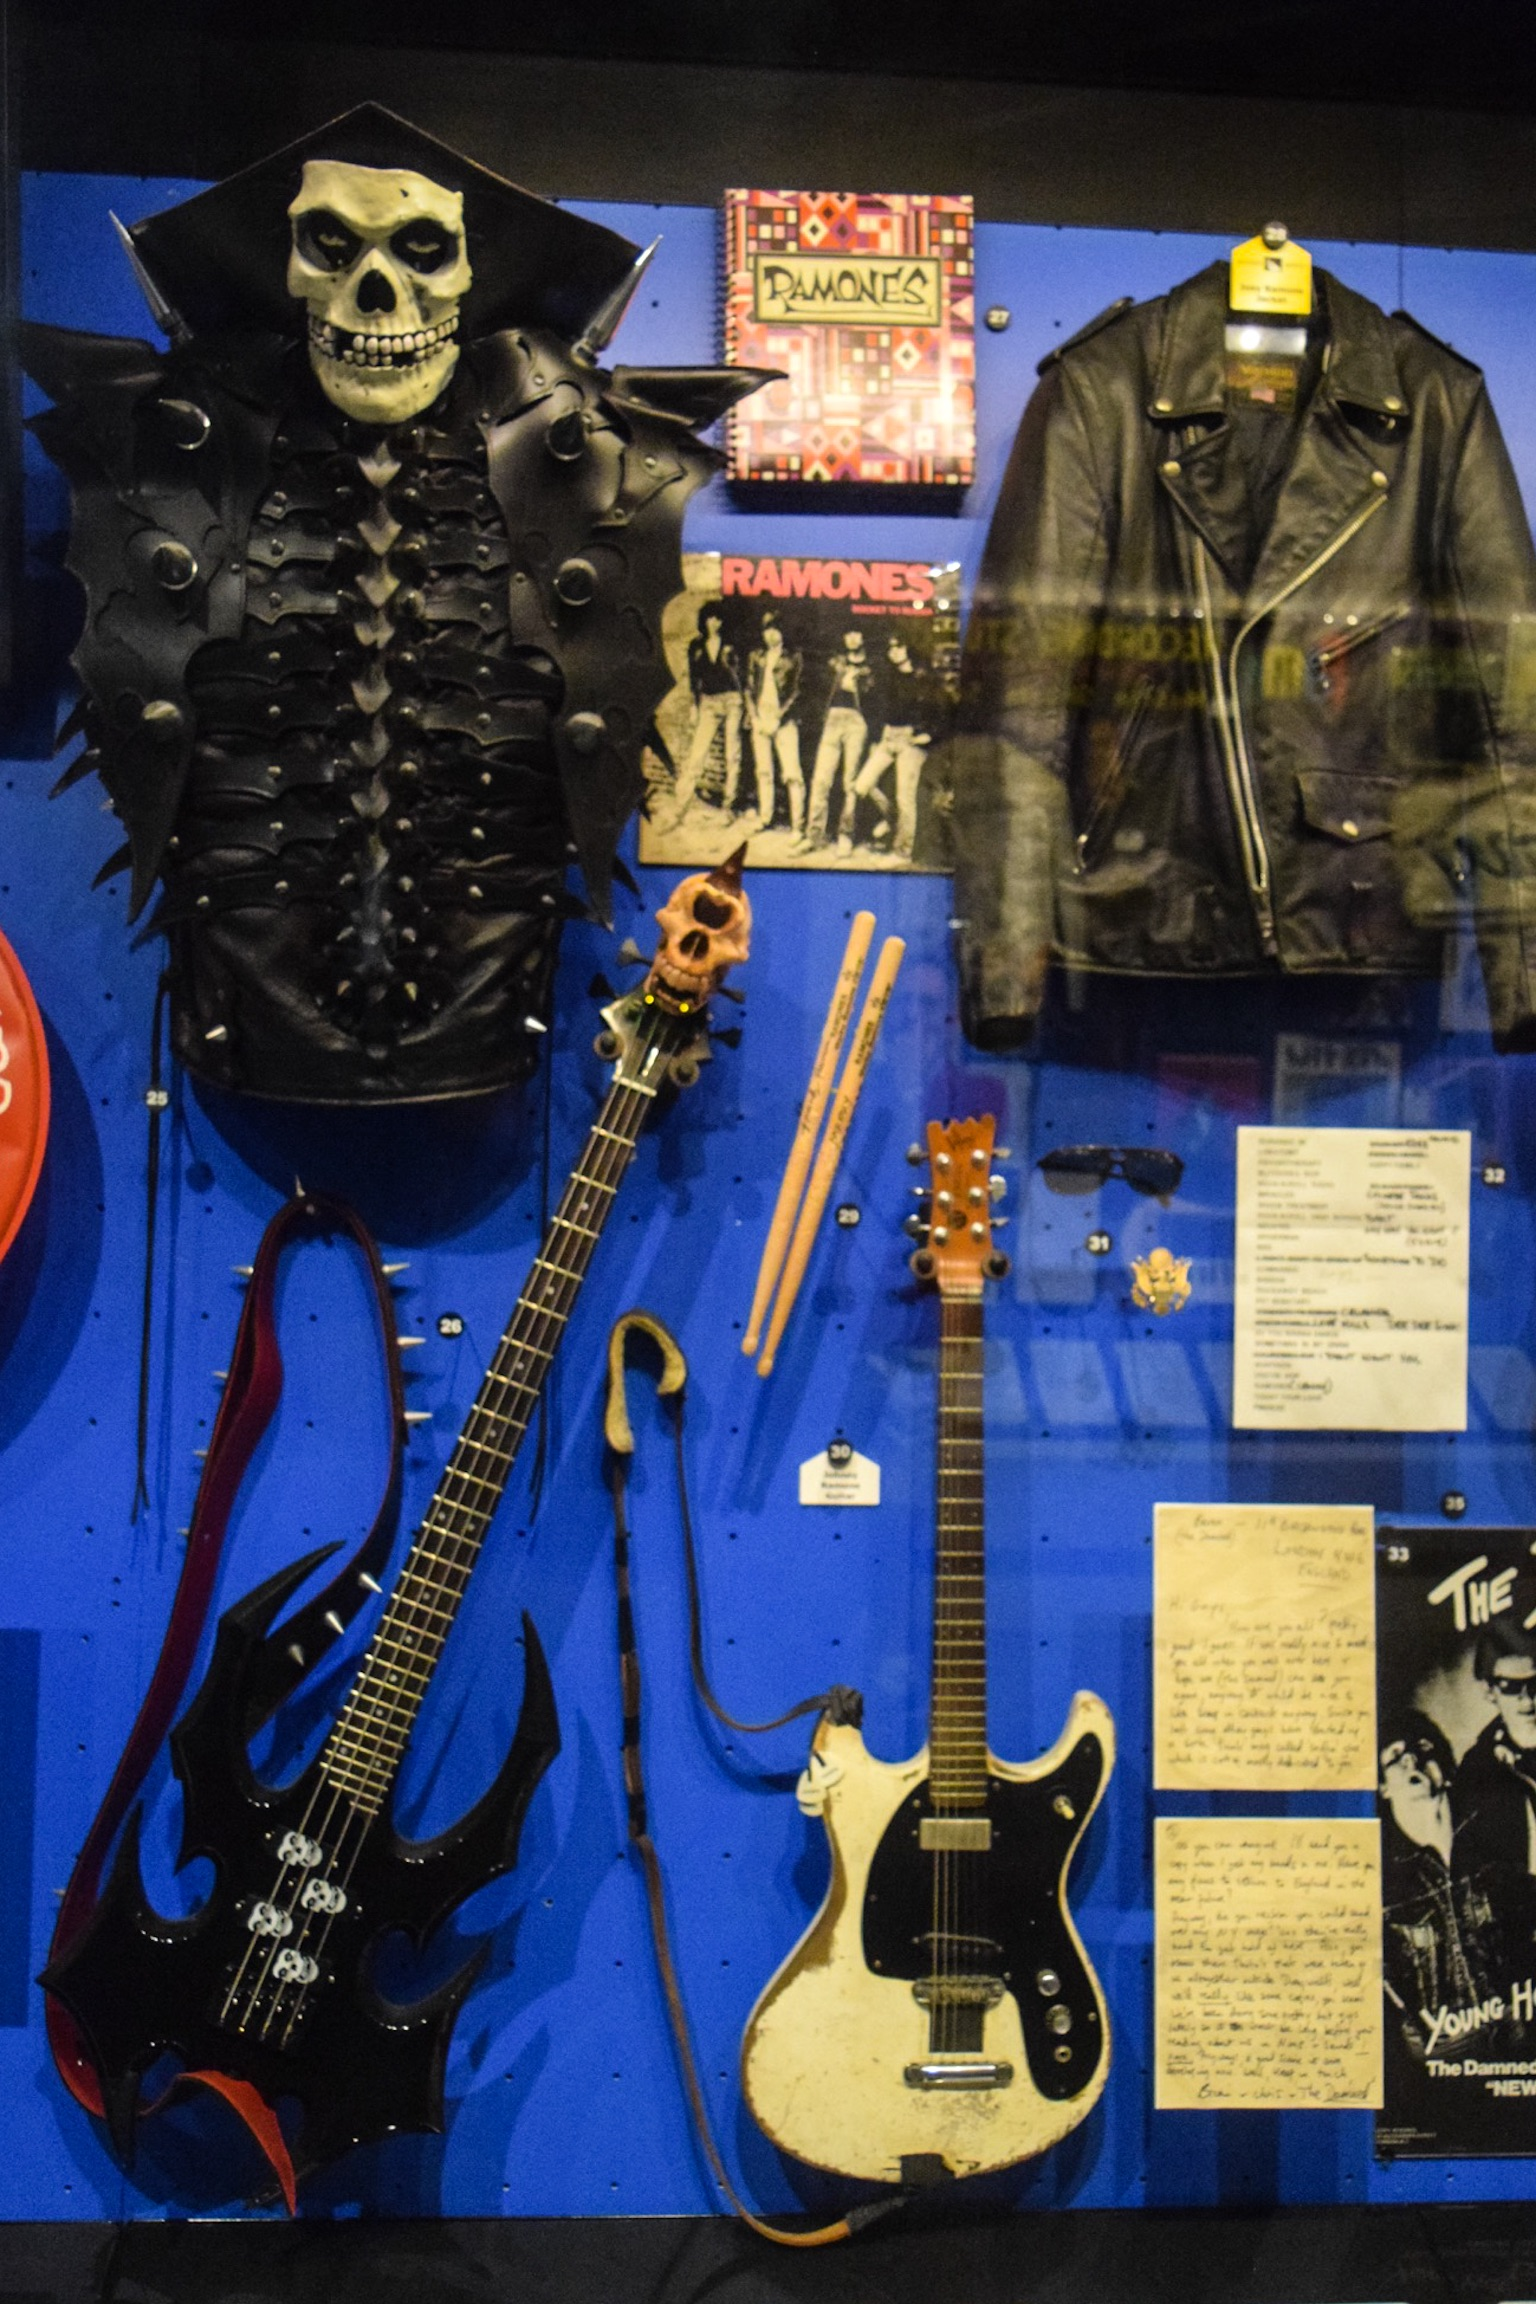 Punk display, featuring The Misfits, Ramones, Circle Jerks, and many more.